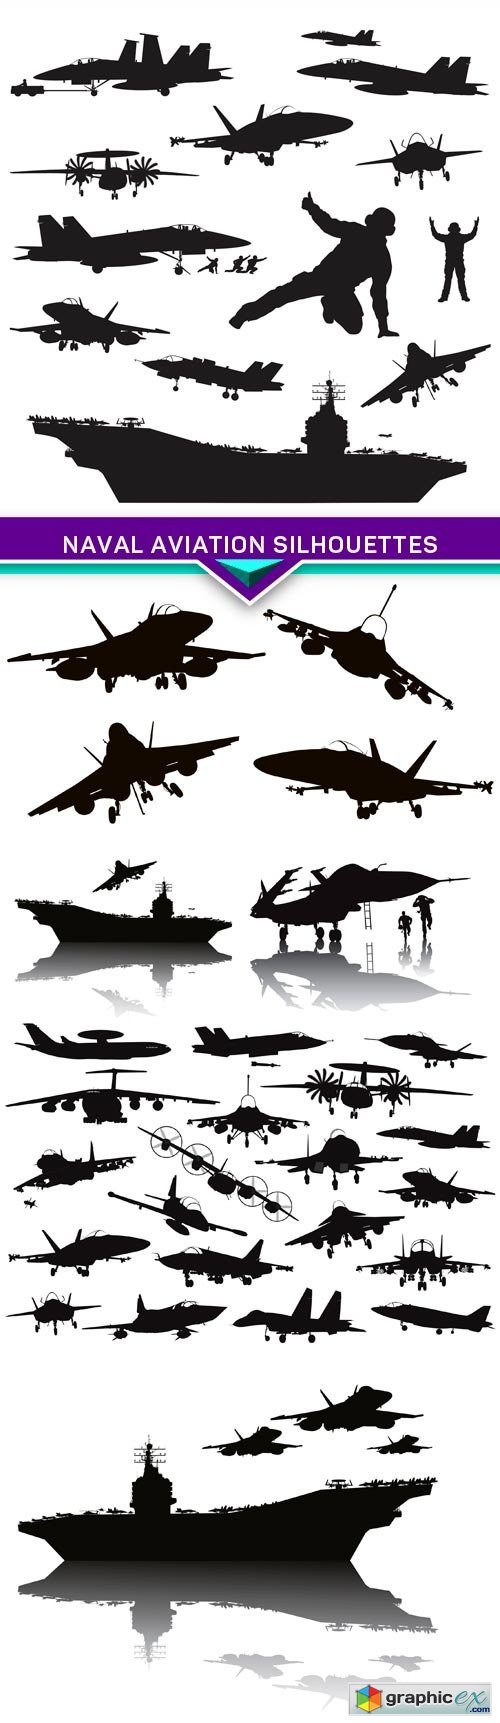 Naval aviation silhouettes 6X EPS